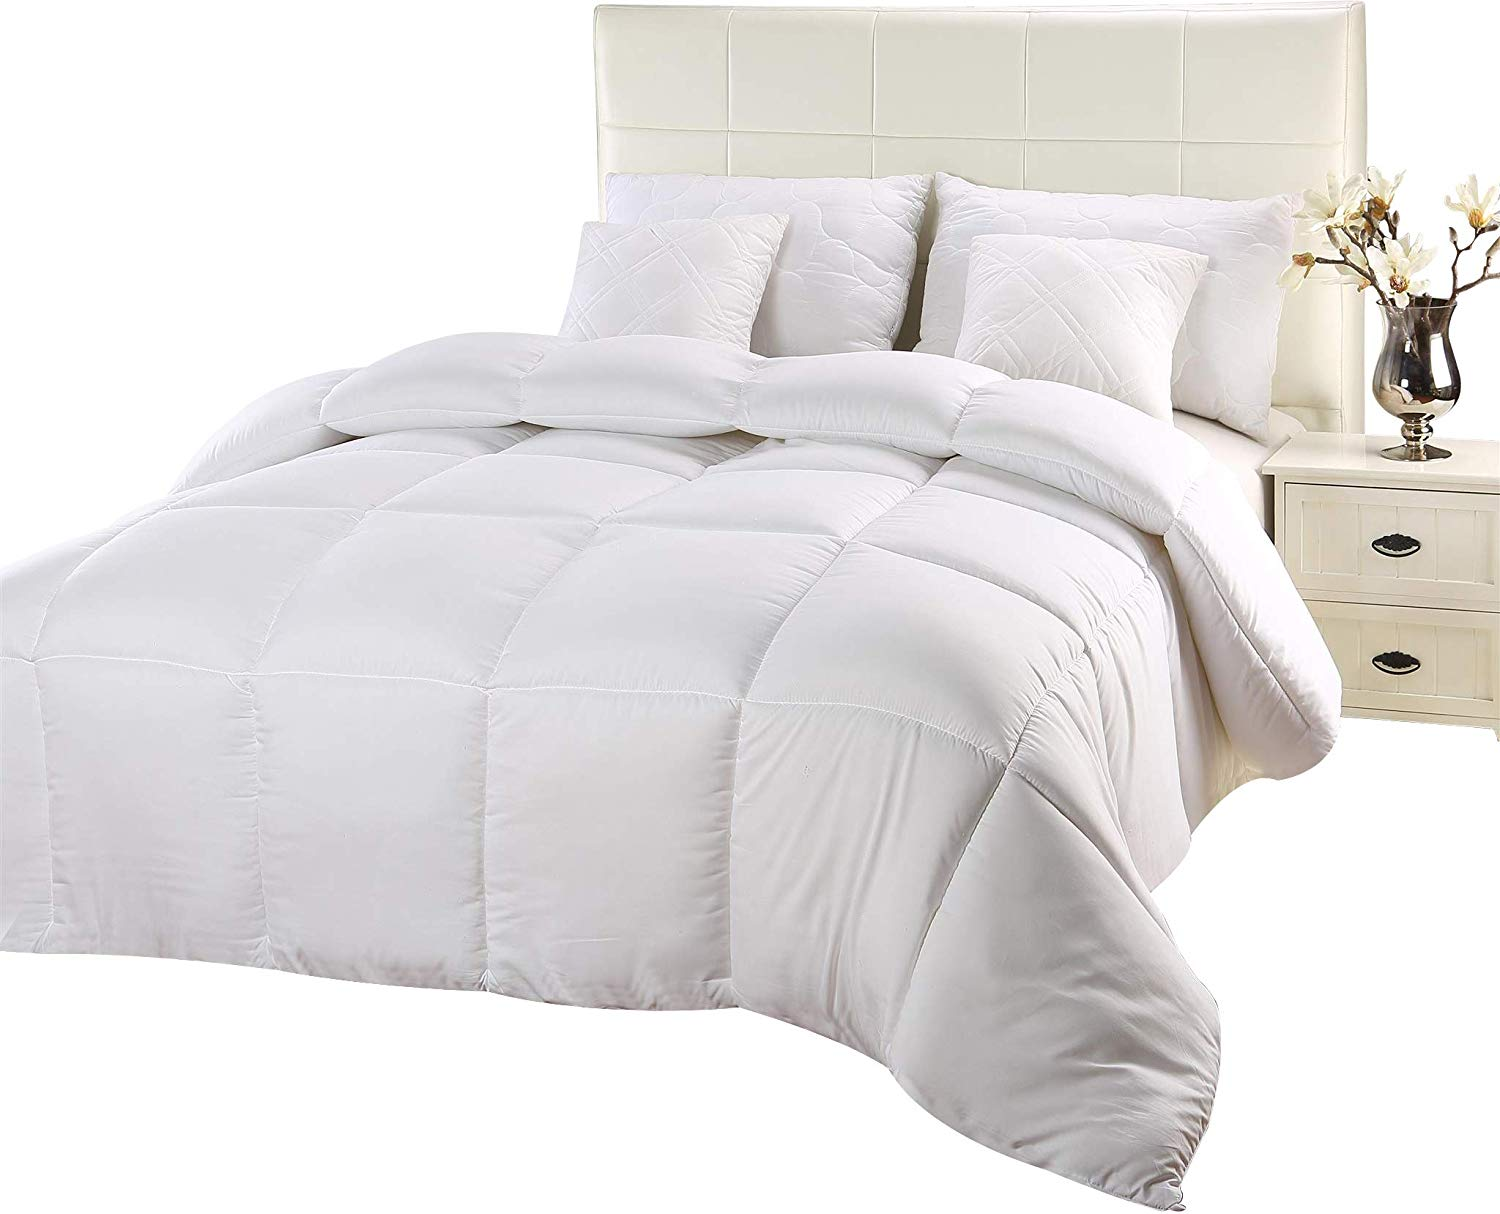 Utopia Bedding Best Down Comforter Reviews by www.snoremagazine.com